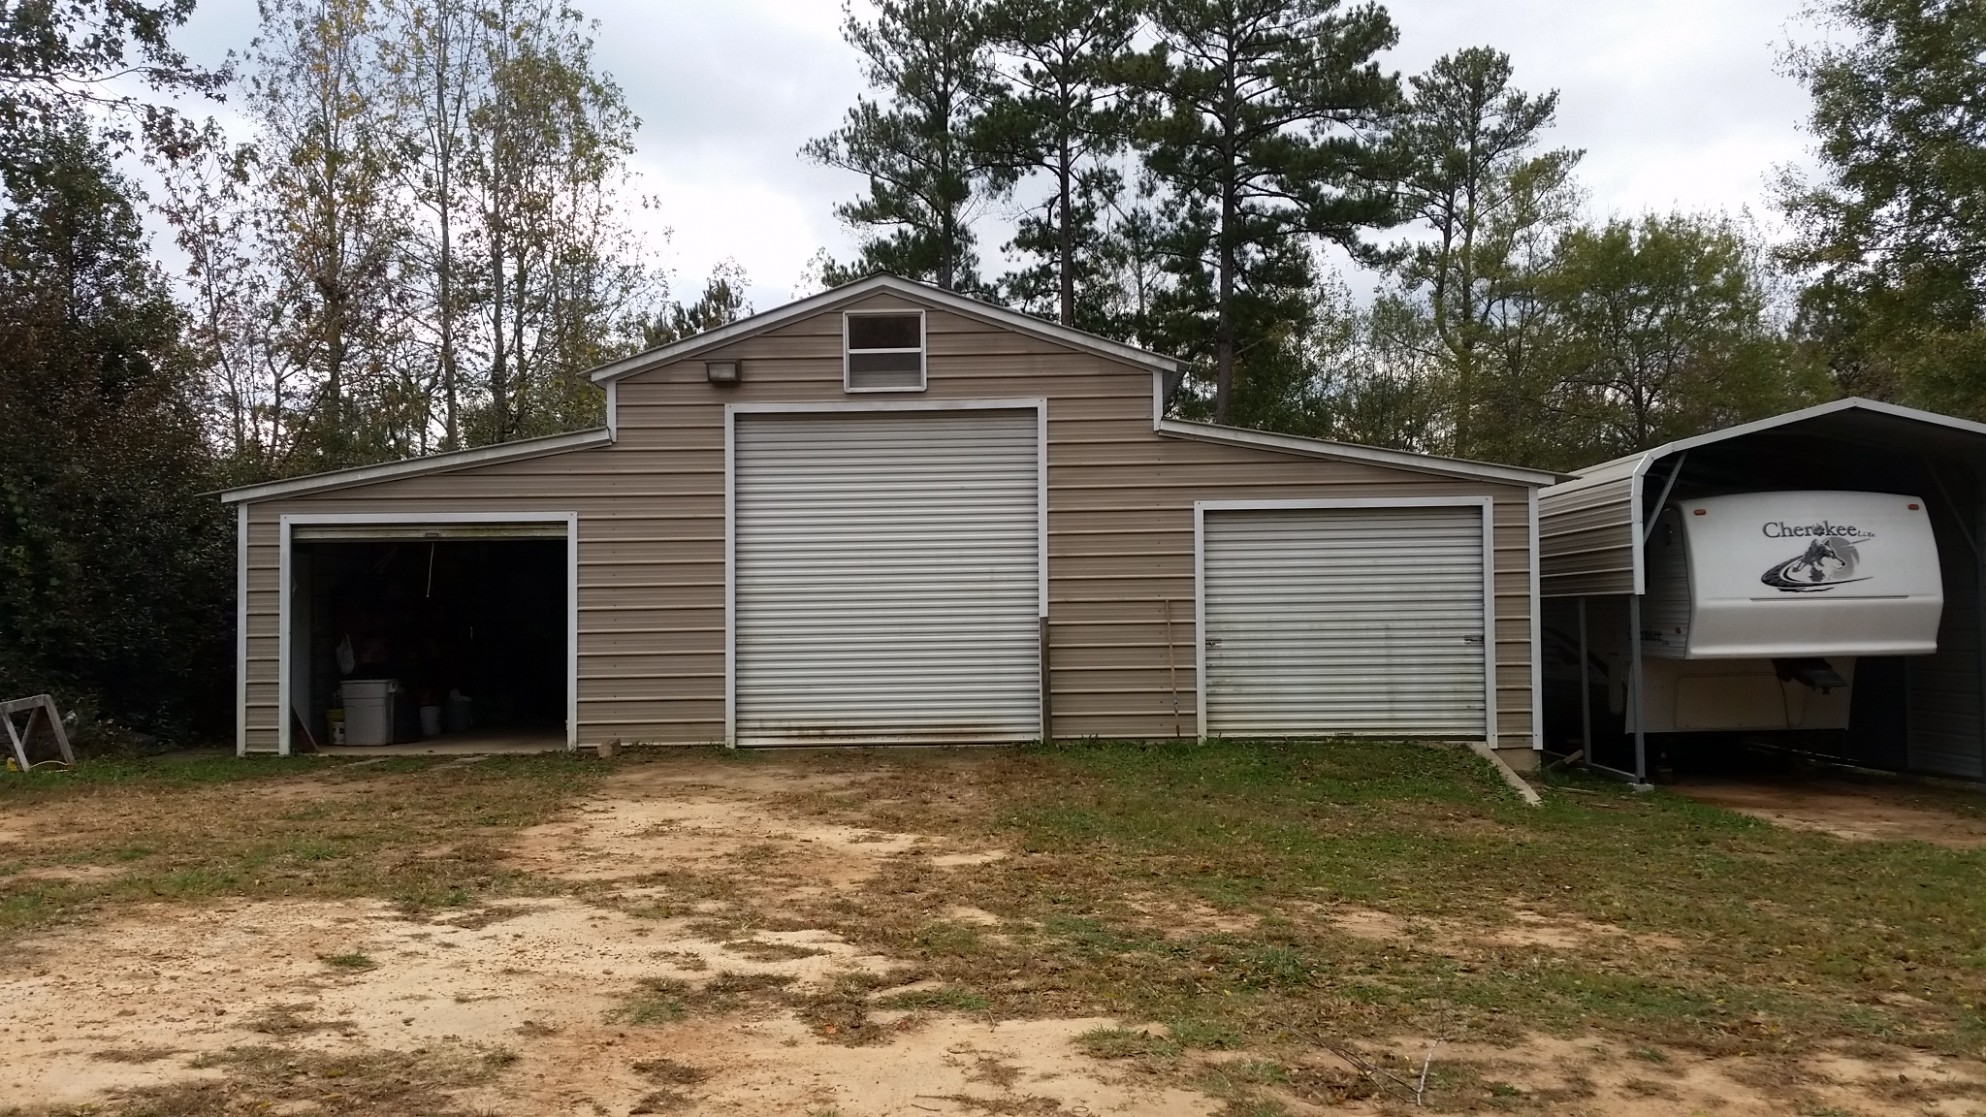 1517611879-enclosed-metal-carports-neaucomic-com-what-is-a-carport-garage.jpg